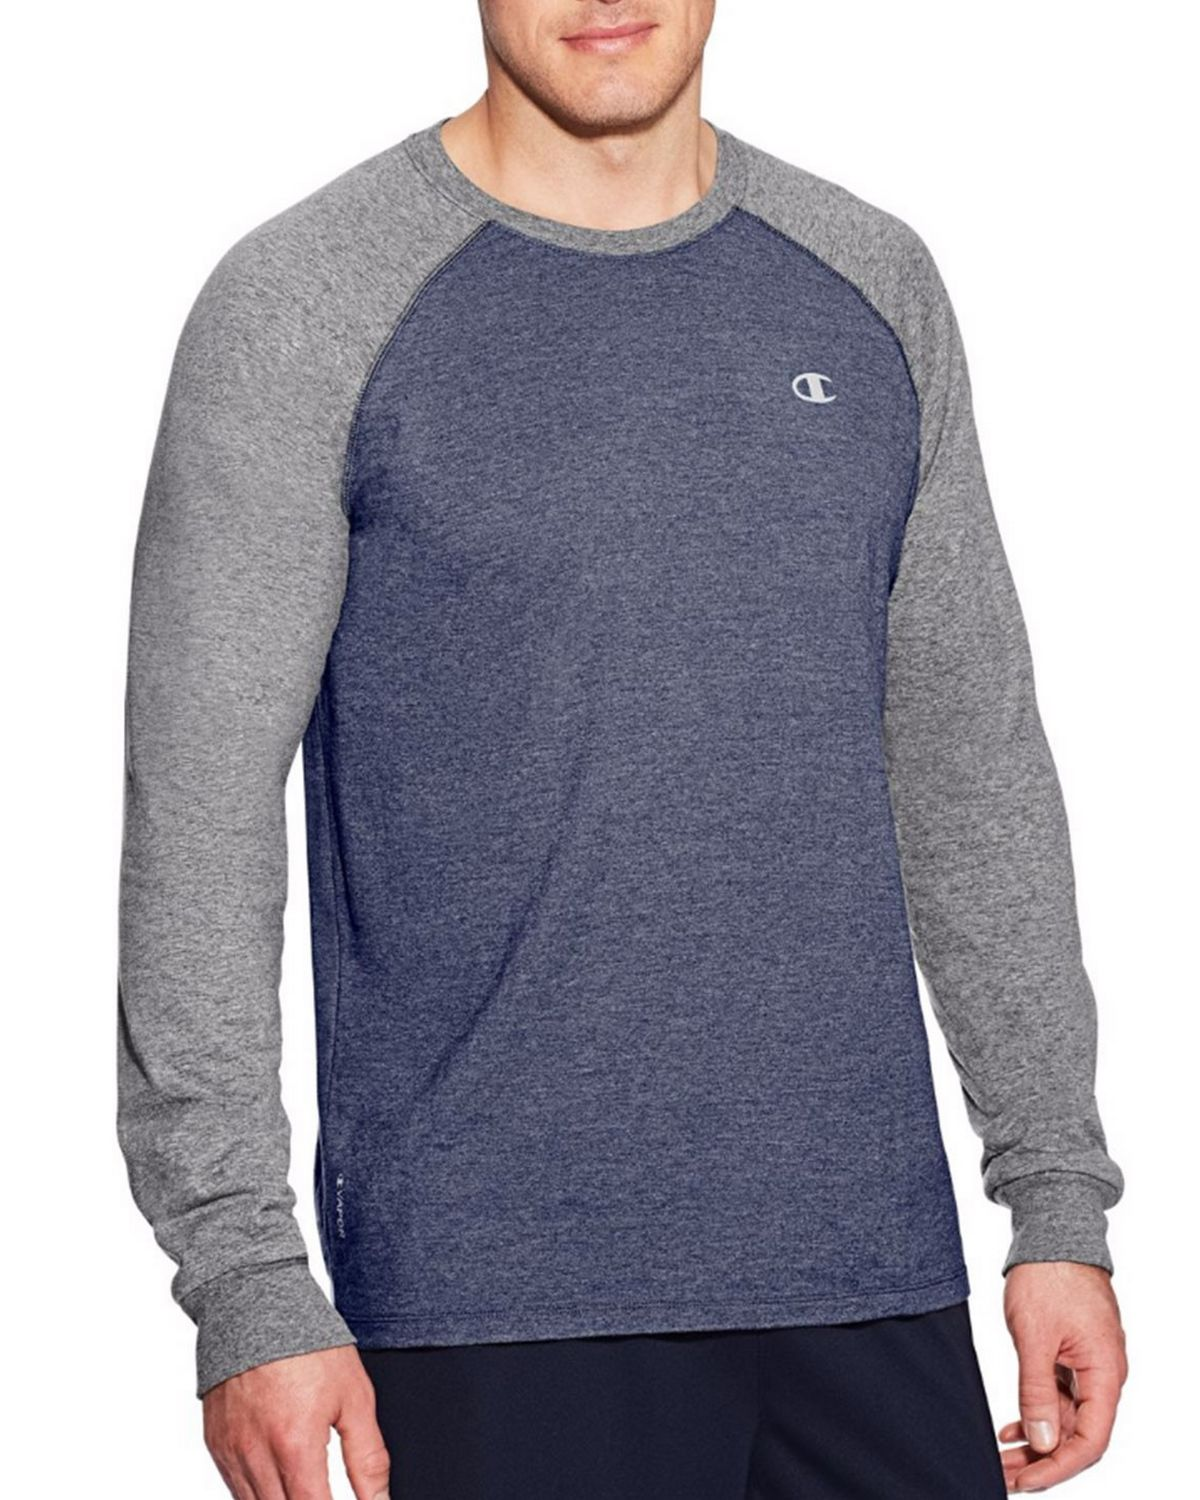 Champion T9937 Vapor Mens Cotton Tee - Champ Navy Heather/Oxford Grey - XL T9937